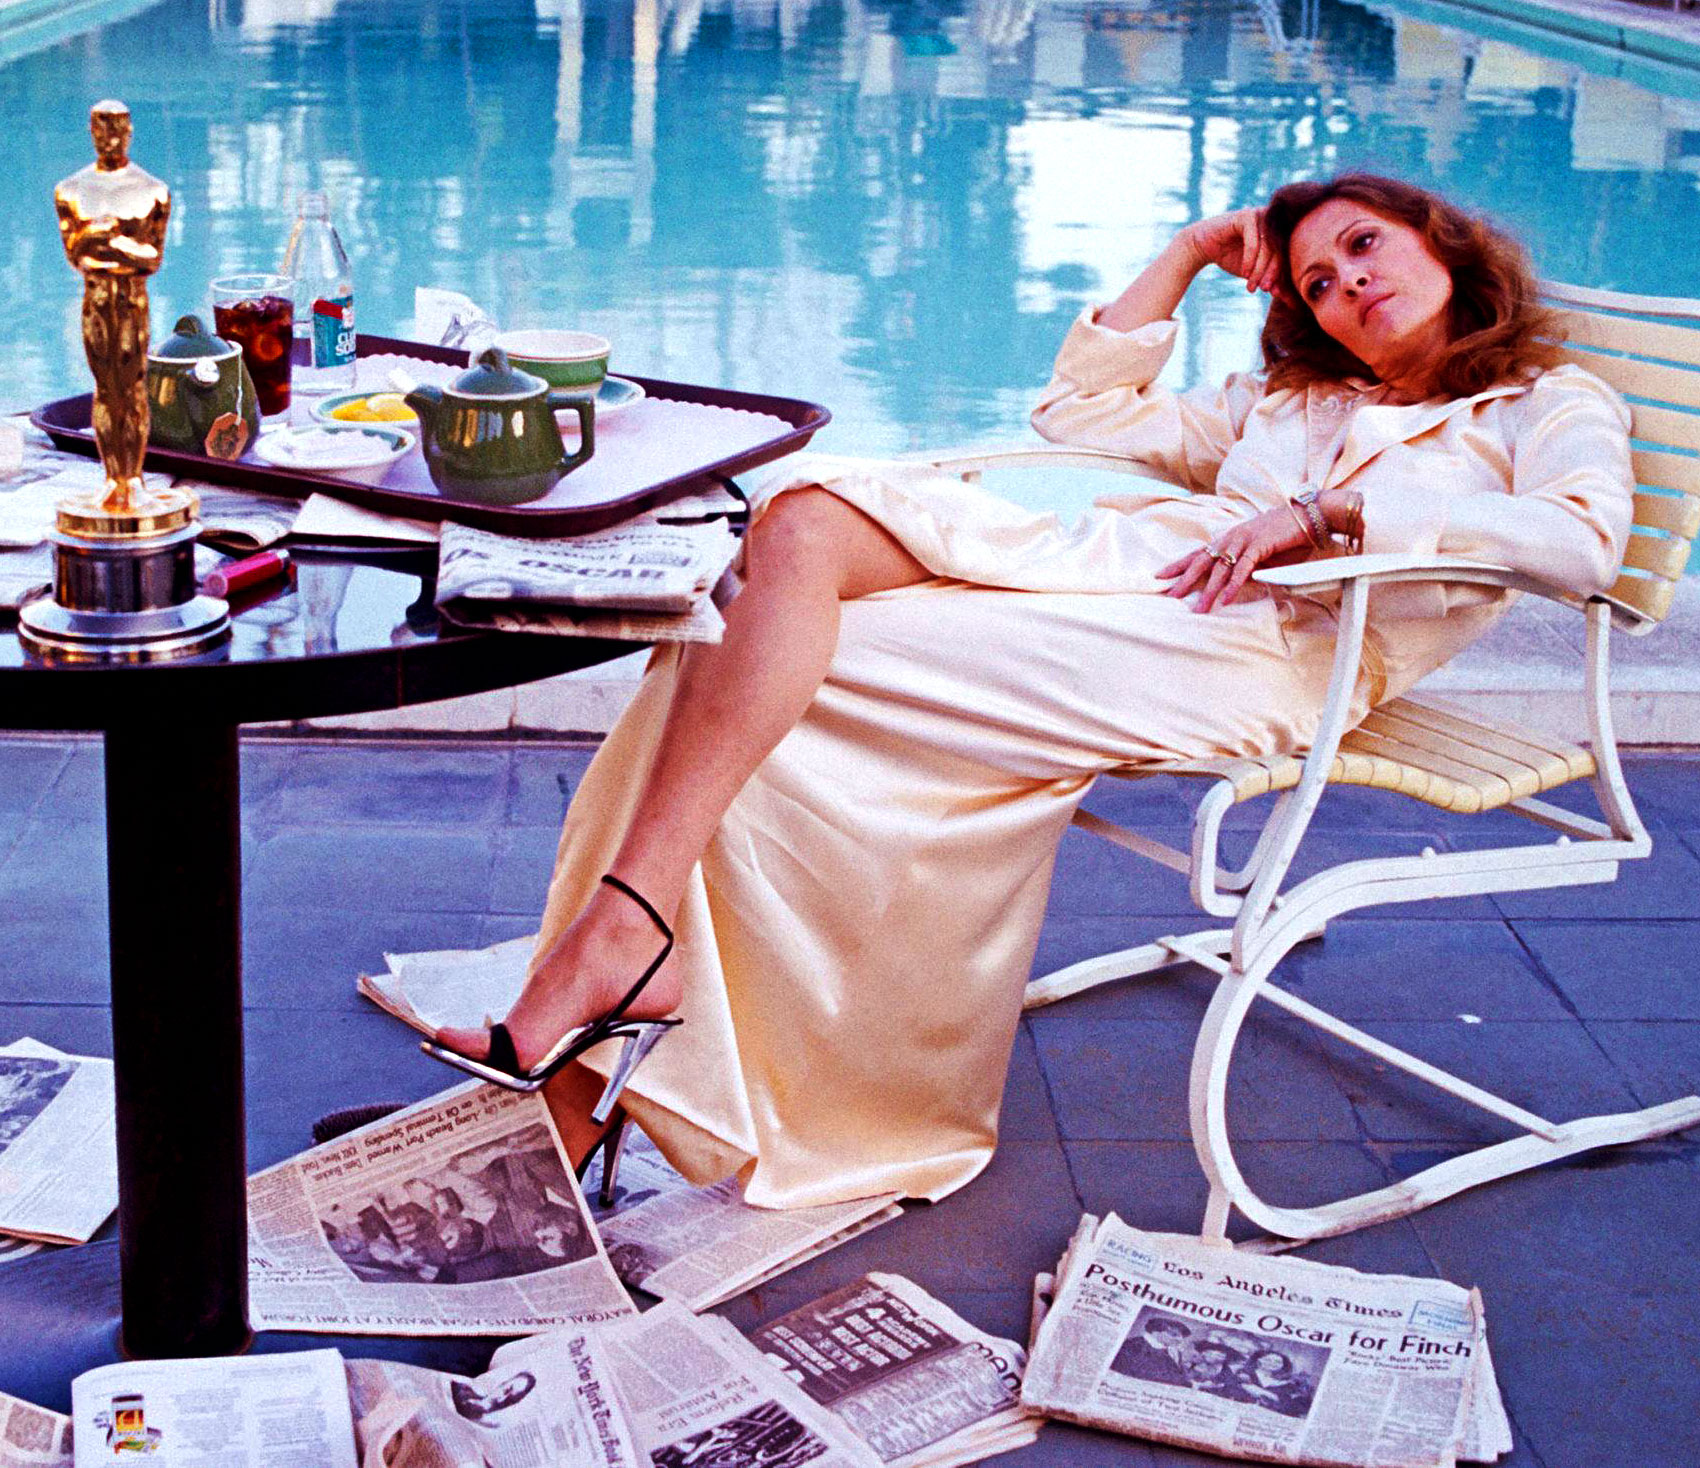 Faye dunaway network - Faye Dunaway Was Also Nominated For Best Actress In The 1968 Movie Titled Bonnie And Clyde As Well As Being Nominated For Best Actress In 1975 For Her